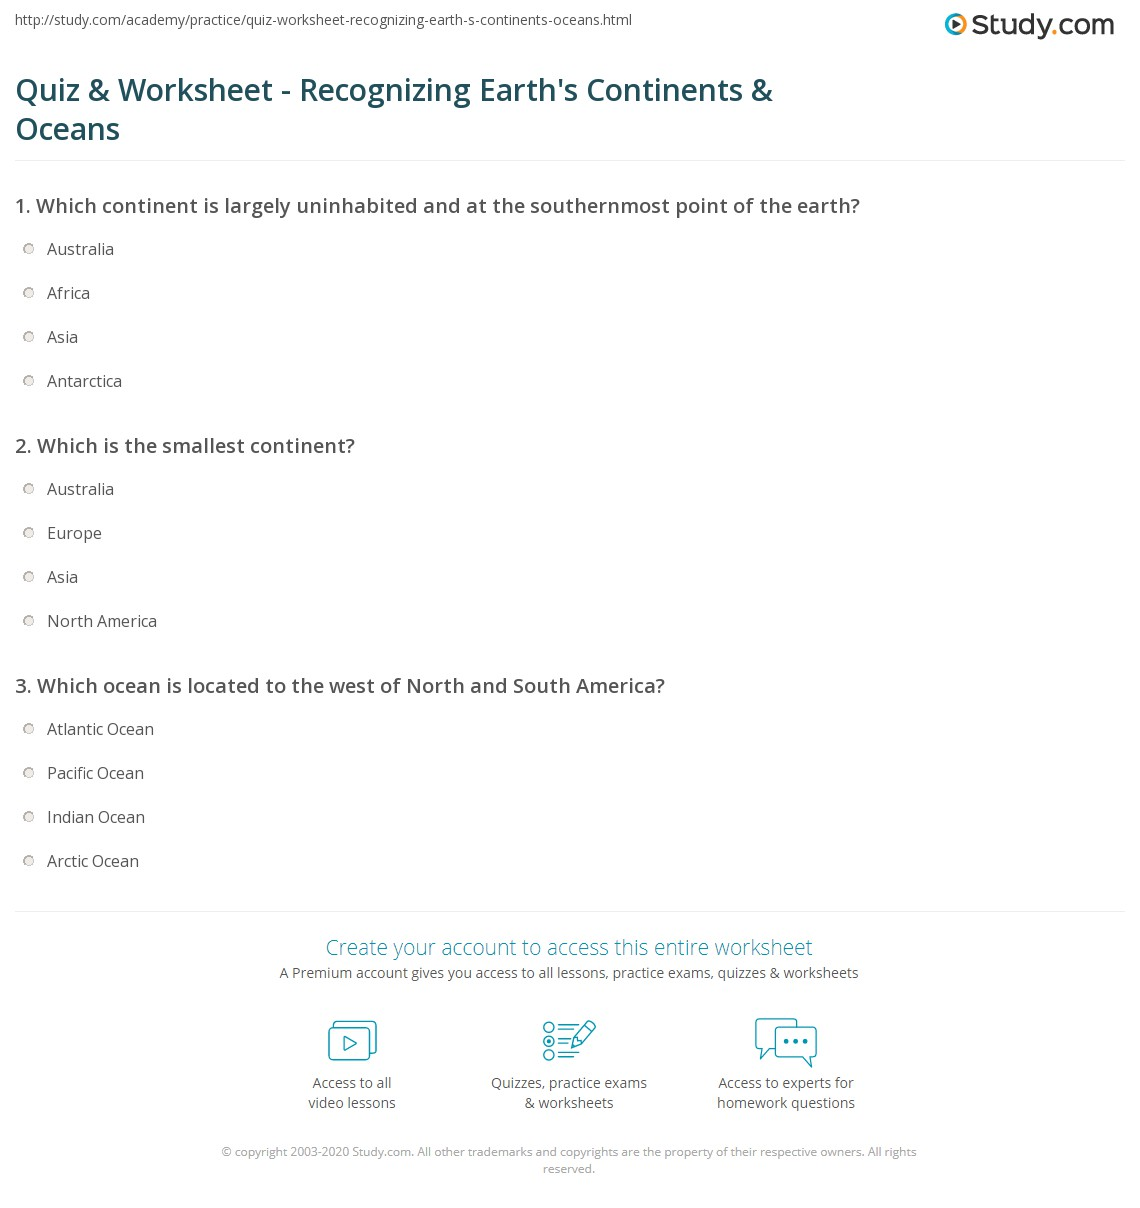 Worksheets The Physical World Continents And Oceans Worksheet quiz worksheet recognizing earths continents oceans study com print identifying the of world worksheet